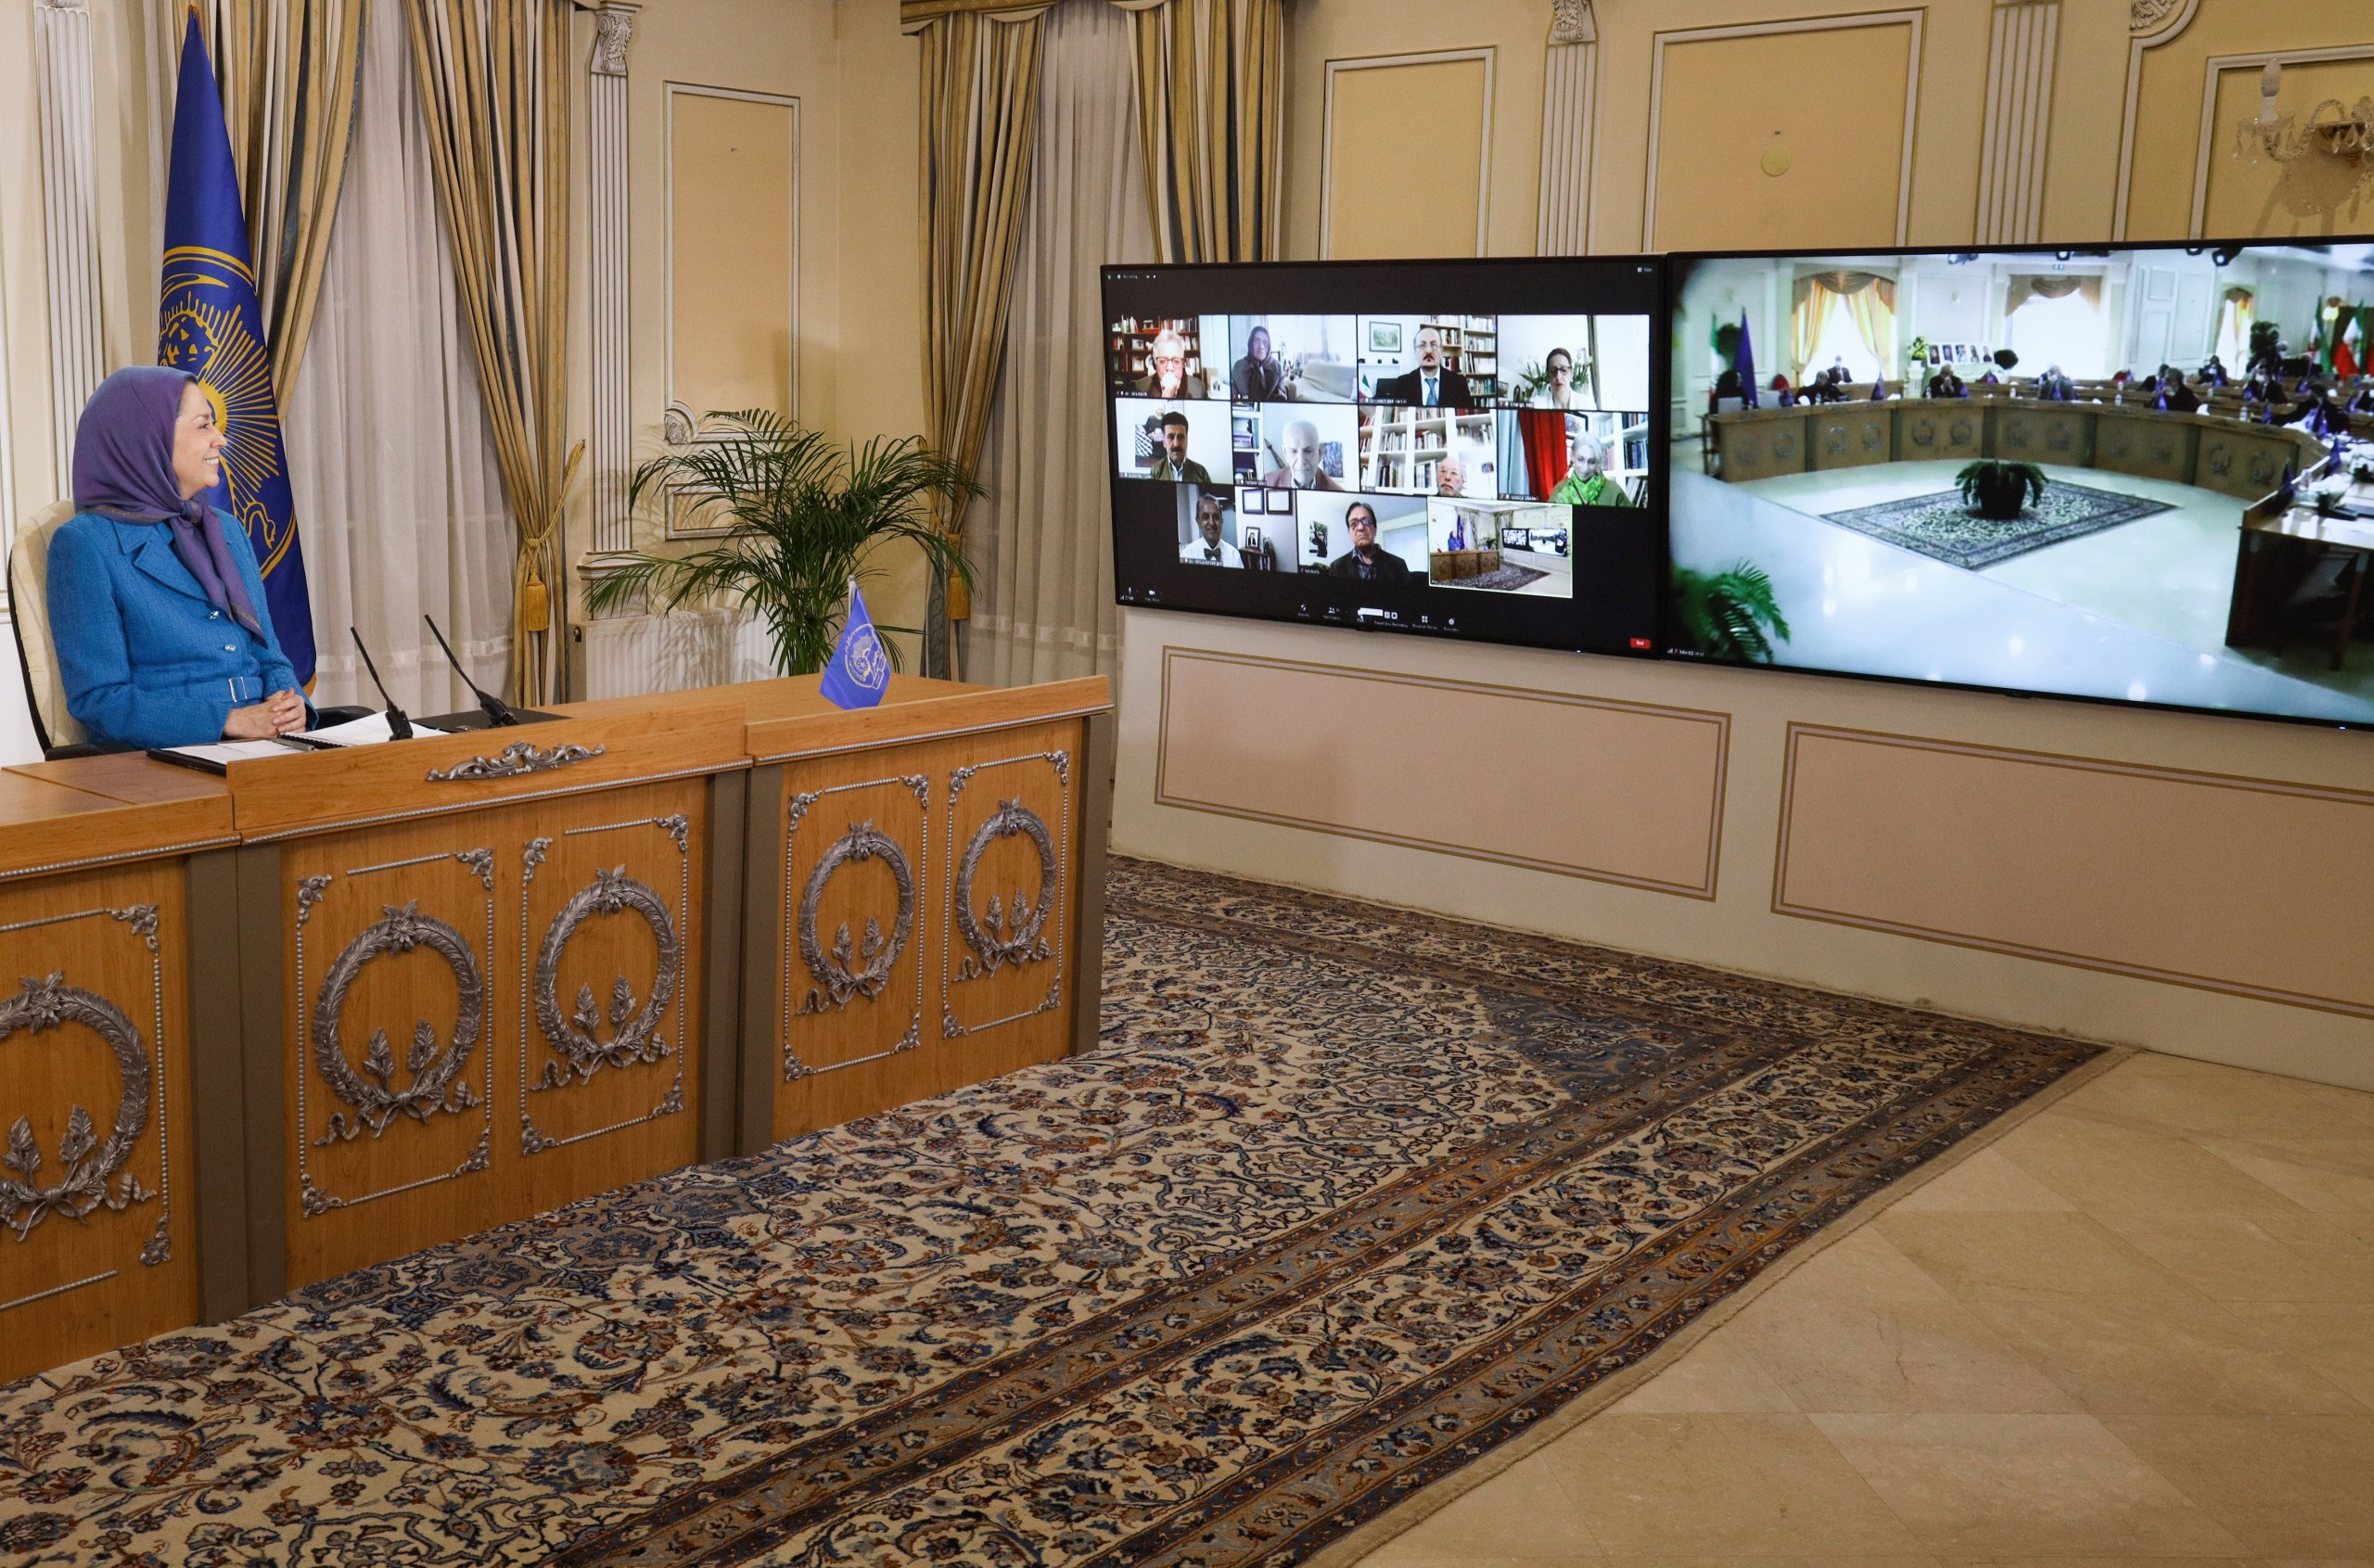 Interim Session of the National Council of Resistance of Iran-March 31, 2021